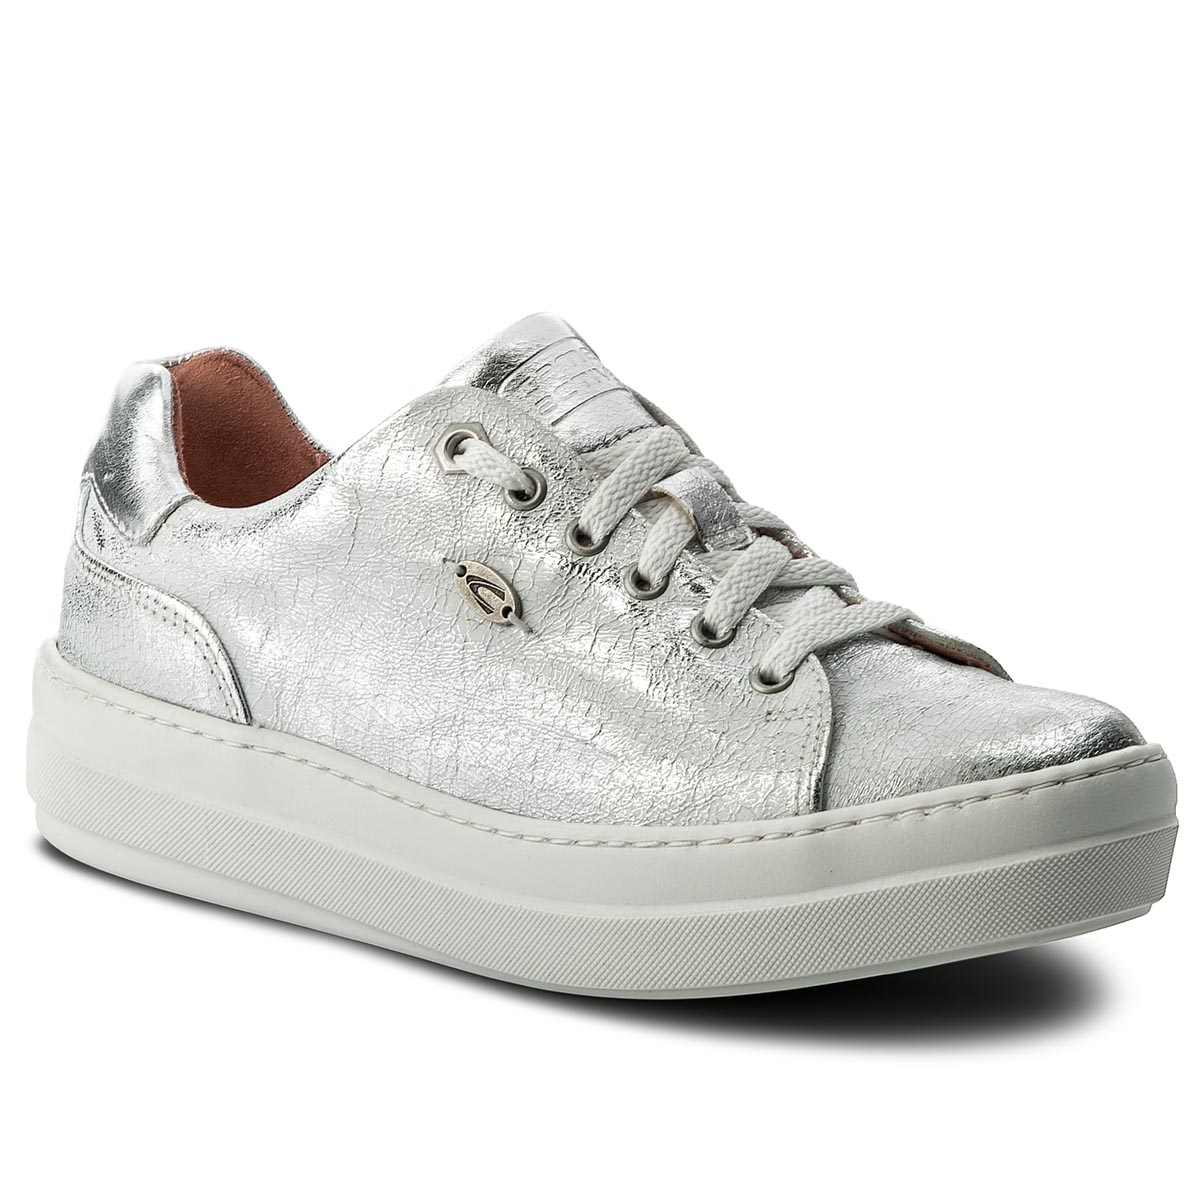 Sneakersy CAMEL ACTIVE - 849.81.01 White/Silver